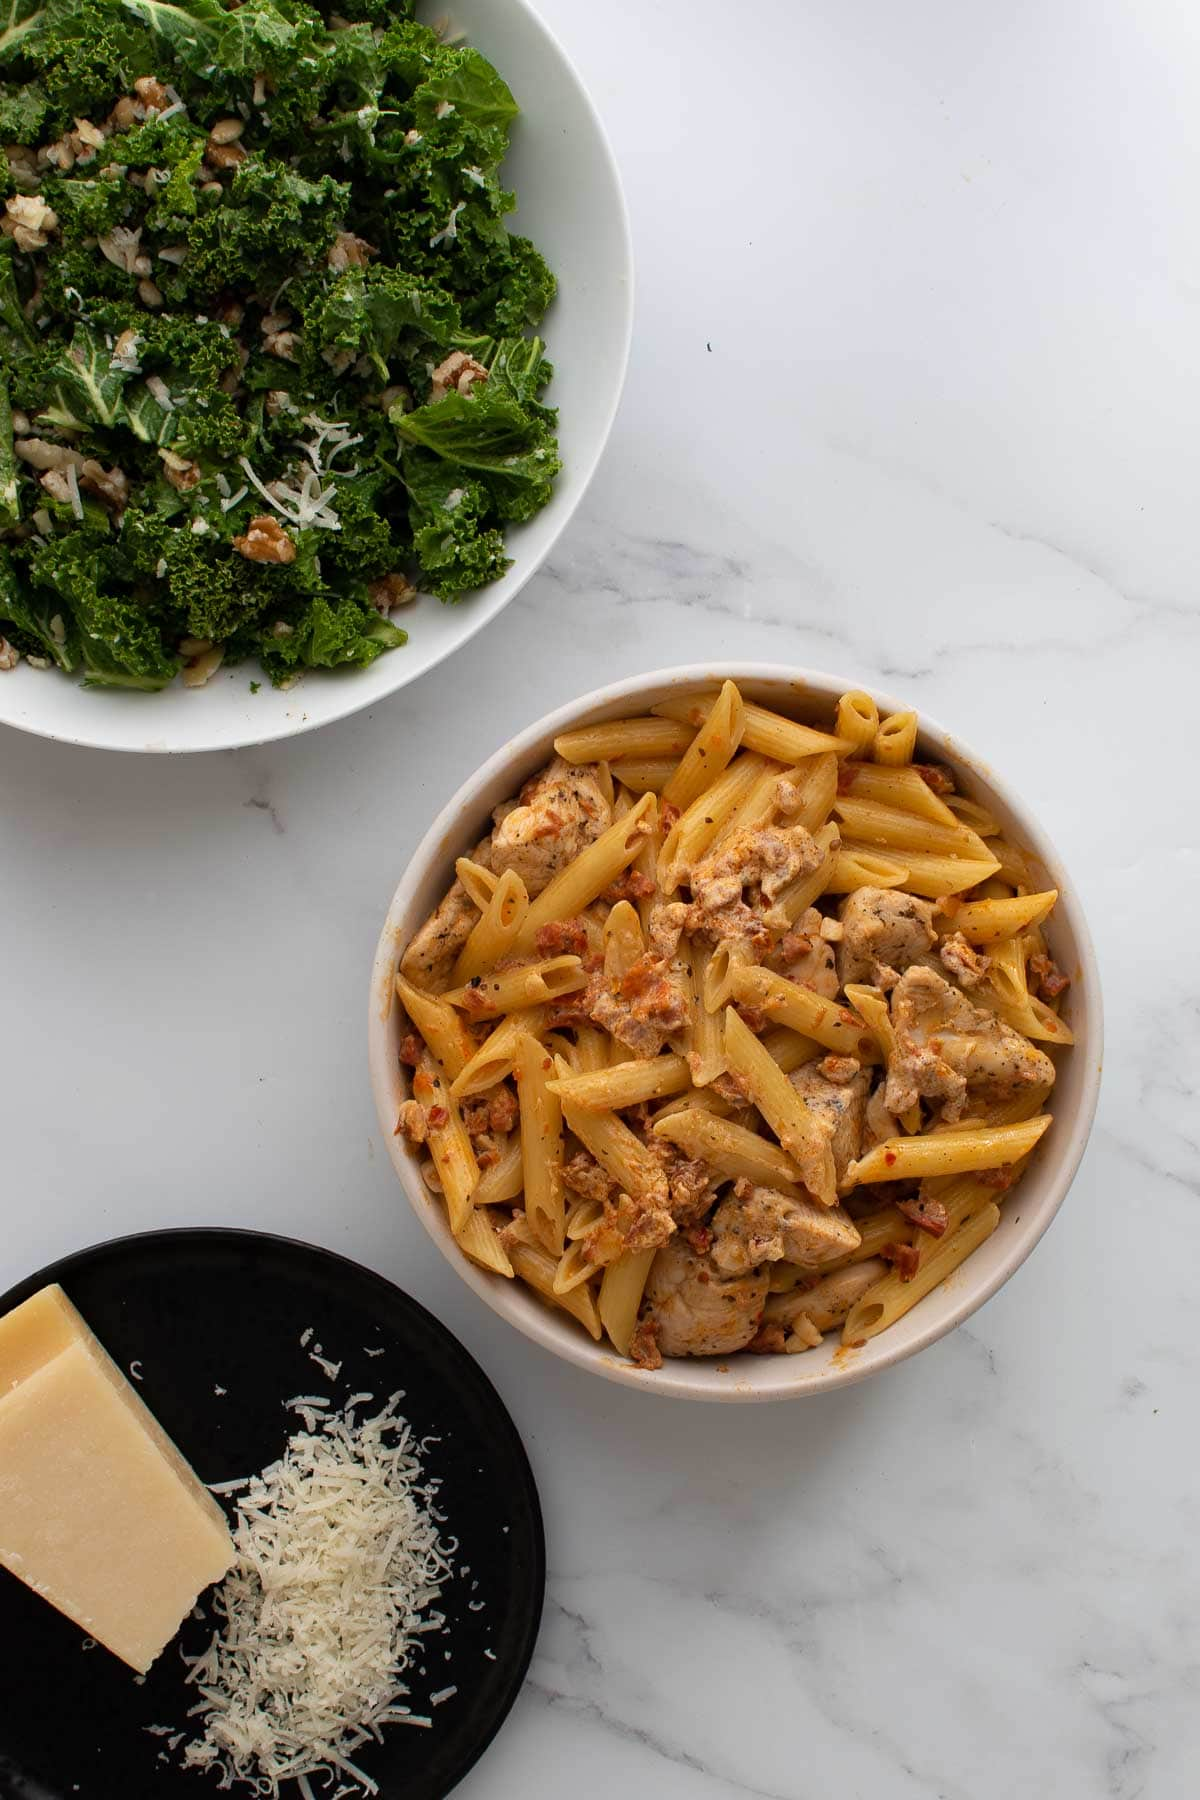 A bowl of chicken and chorizo pasta, with kale salad on the side.